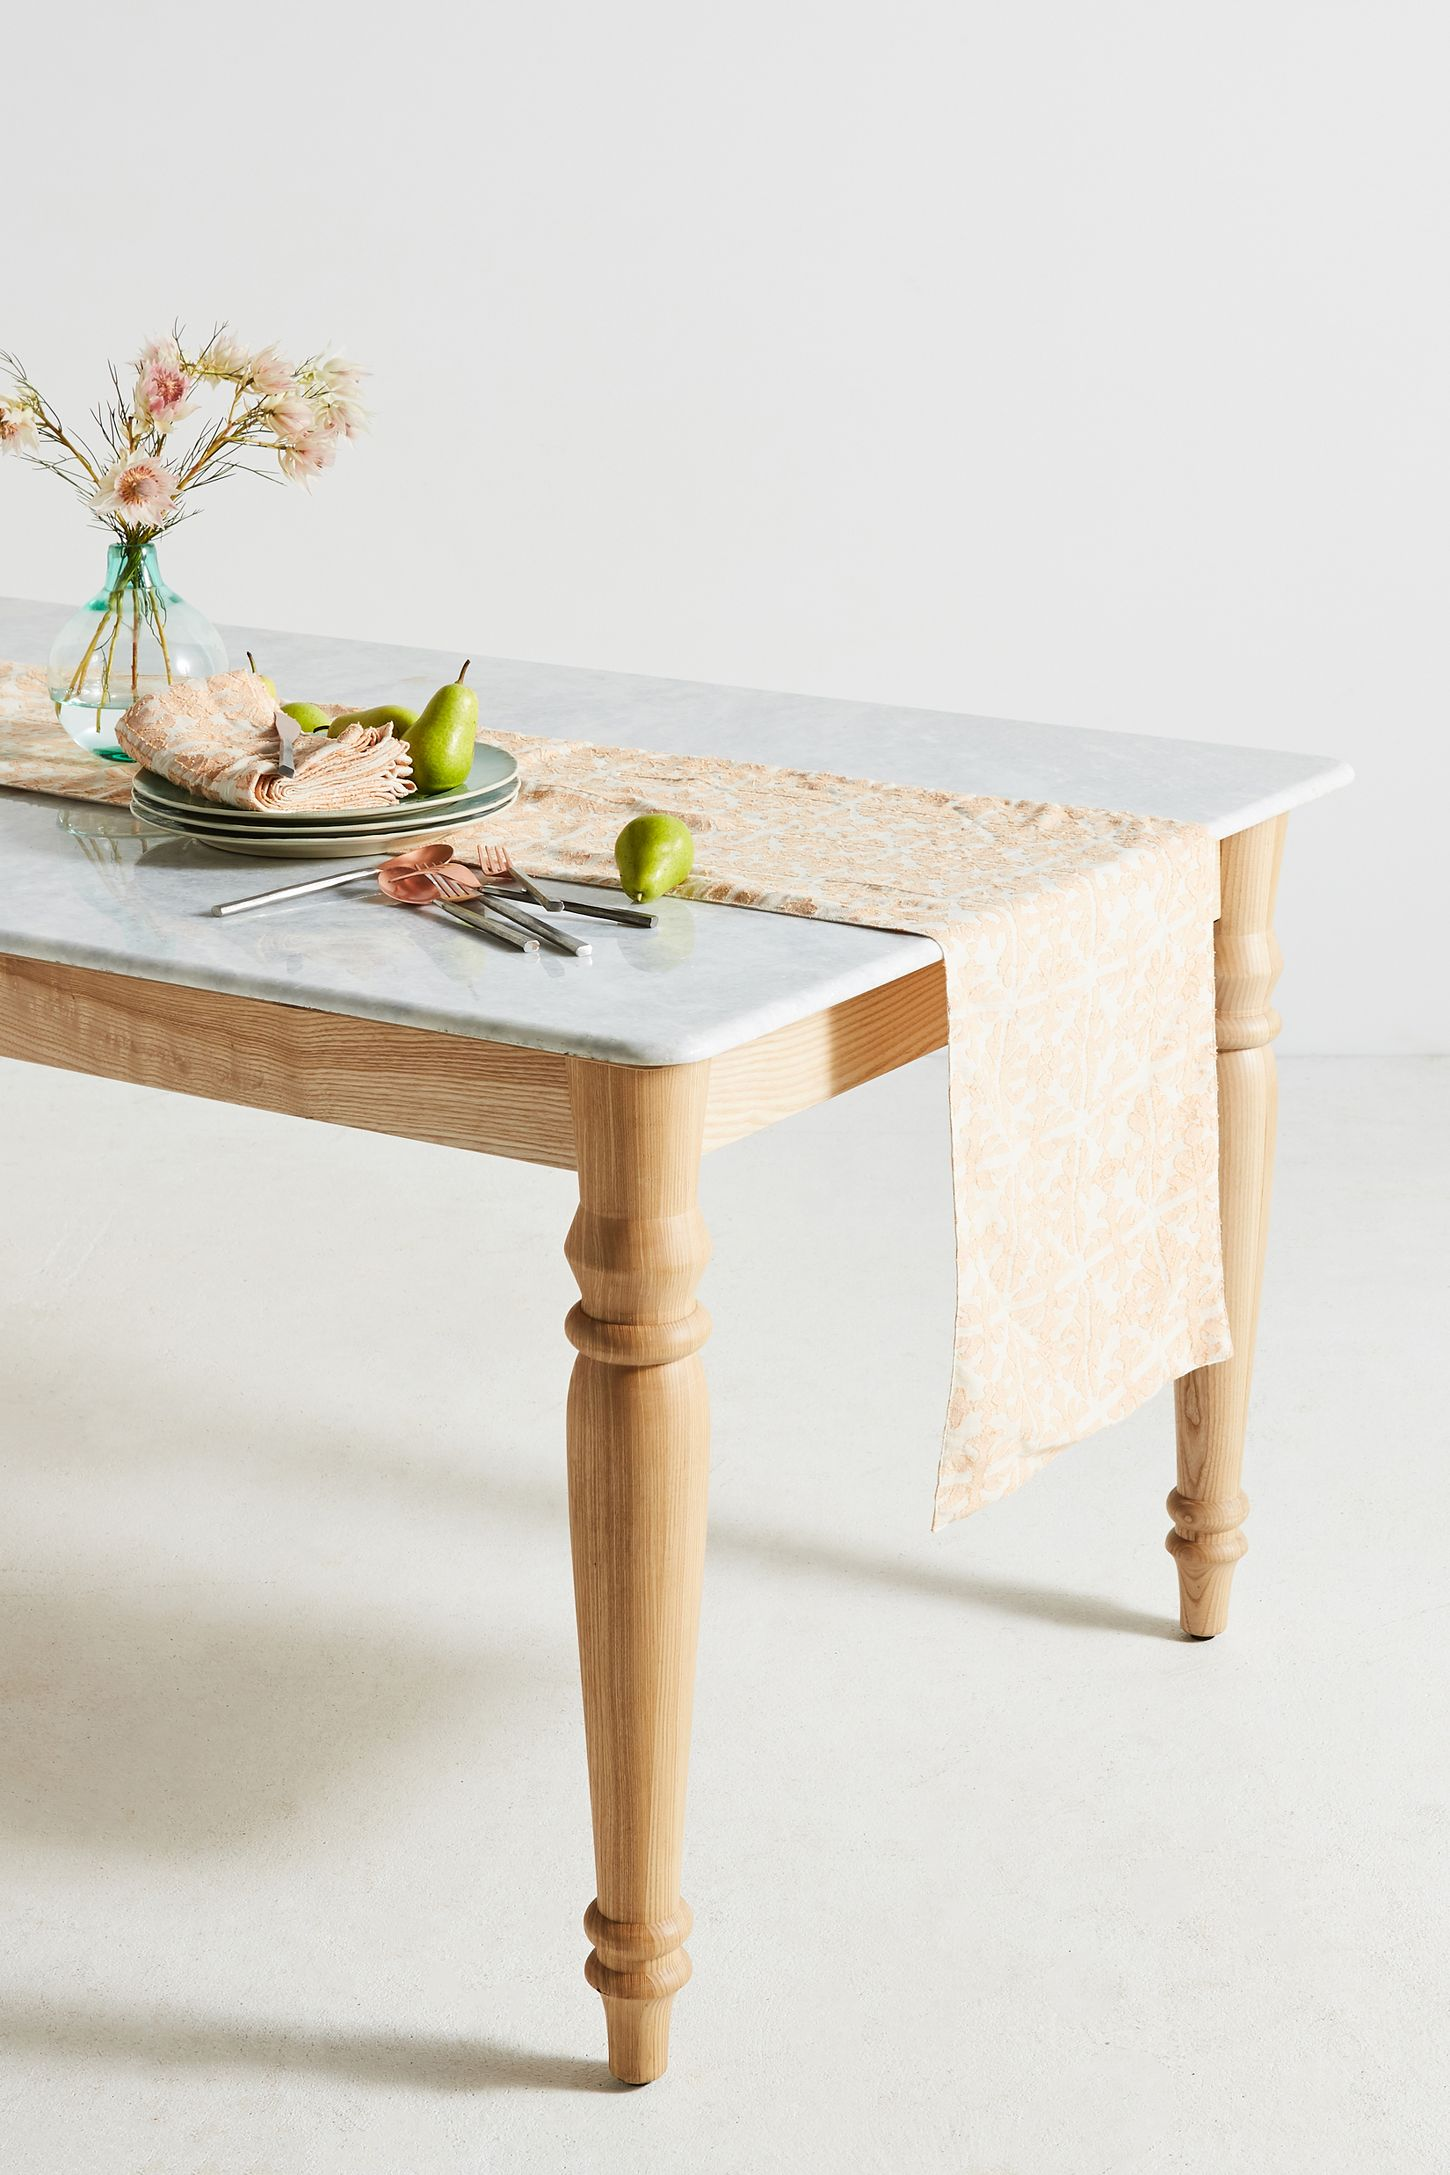 Metallic Jacquard Table Runner